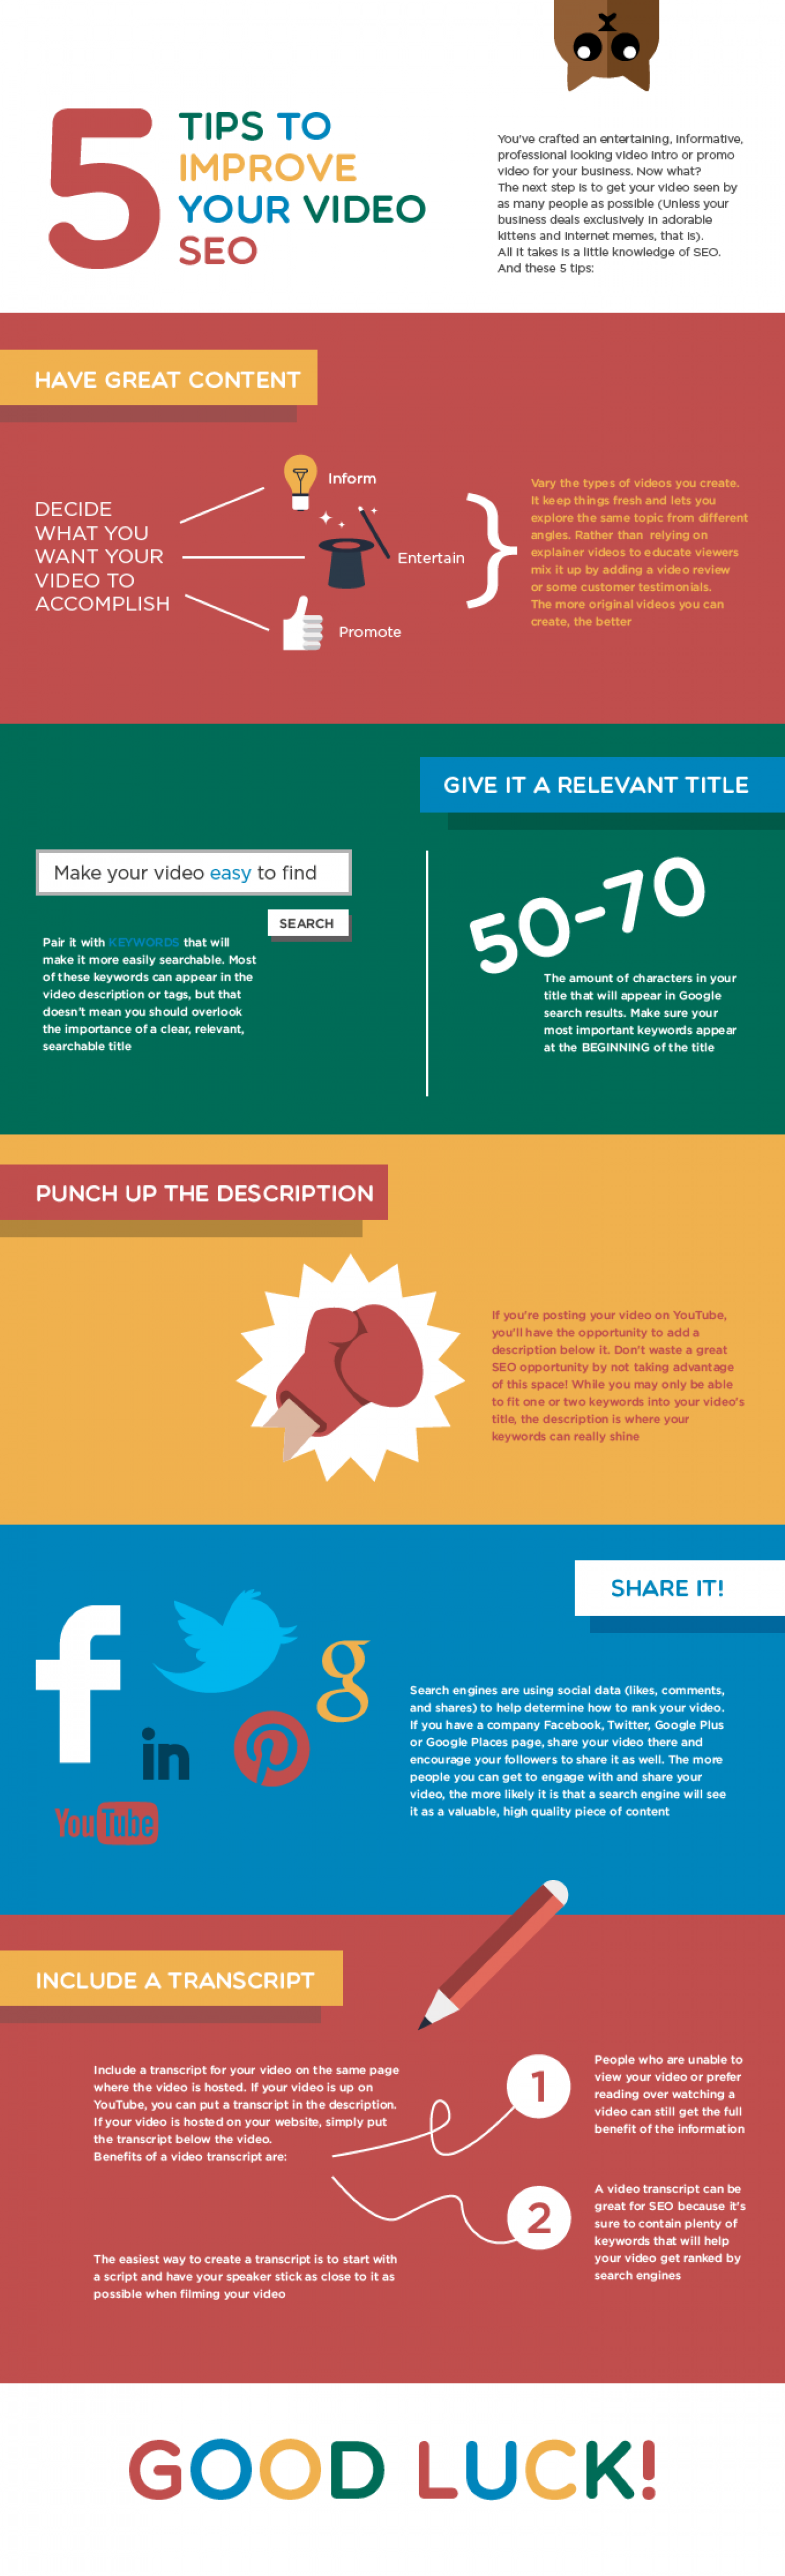 How to Improve Your Video SEO  Infographic